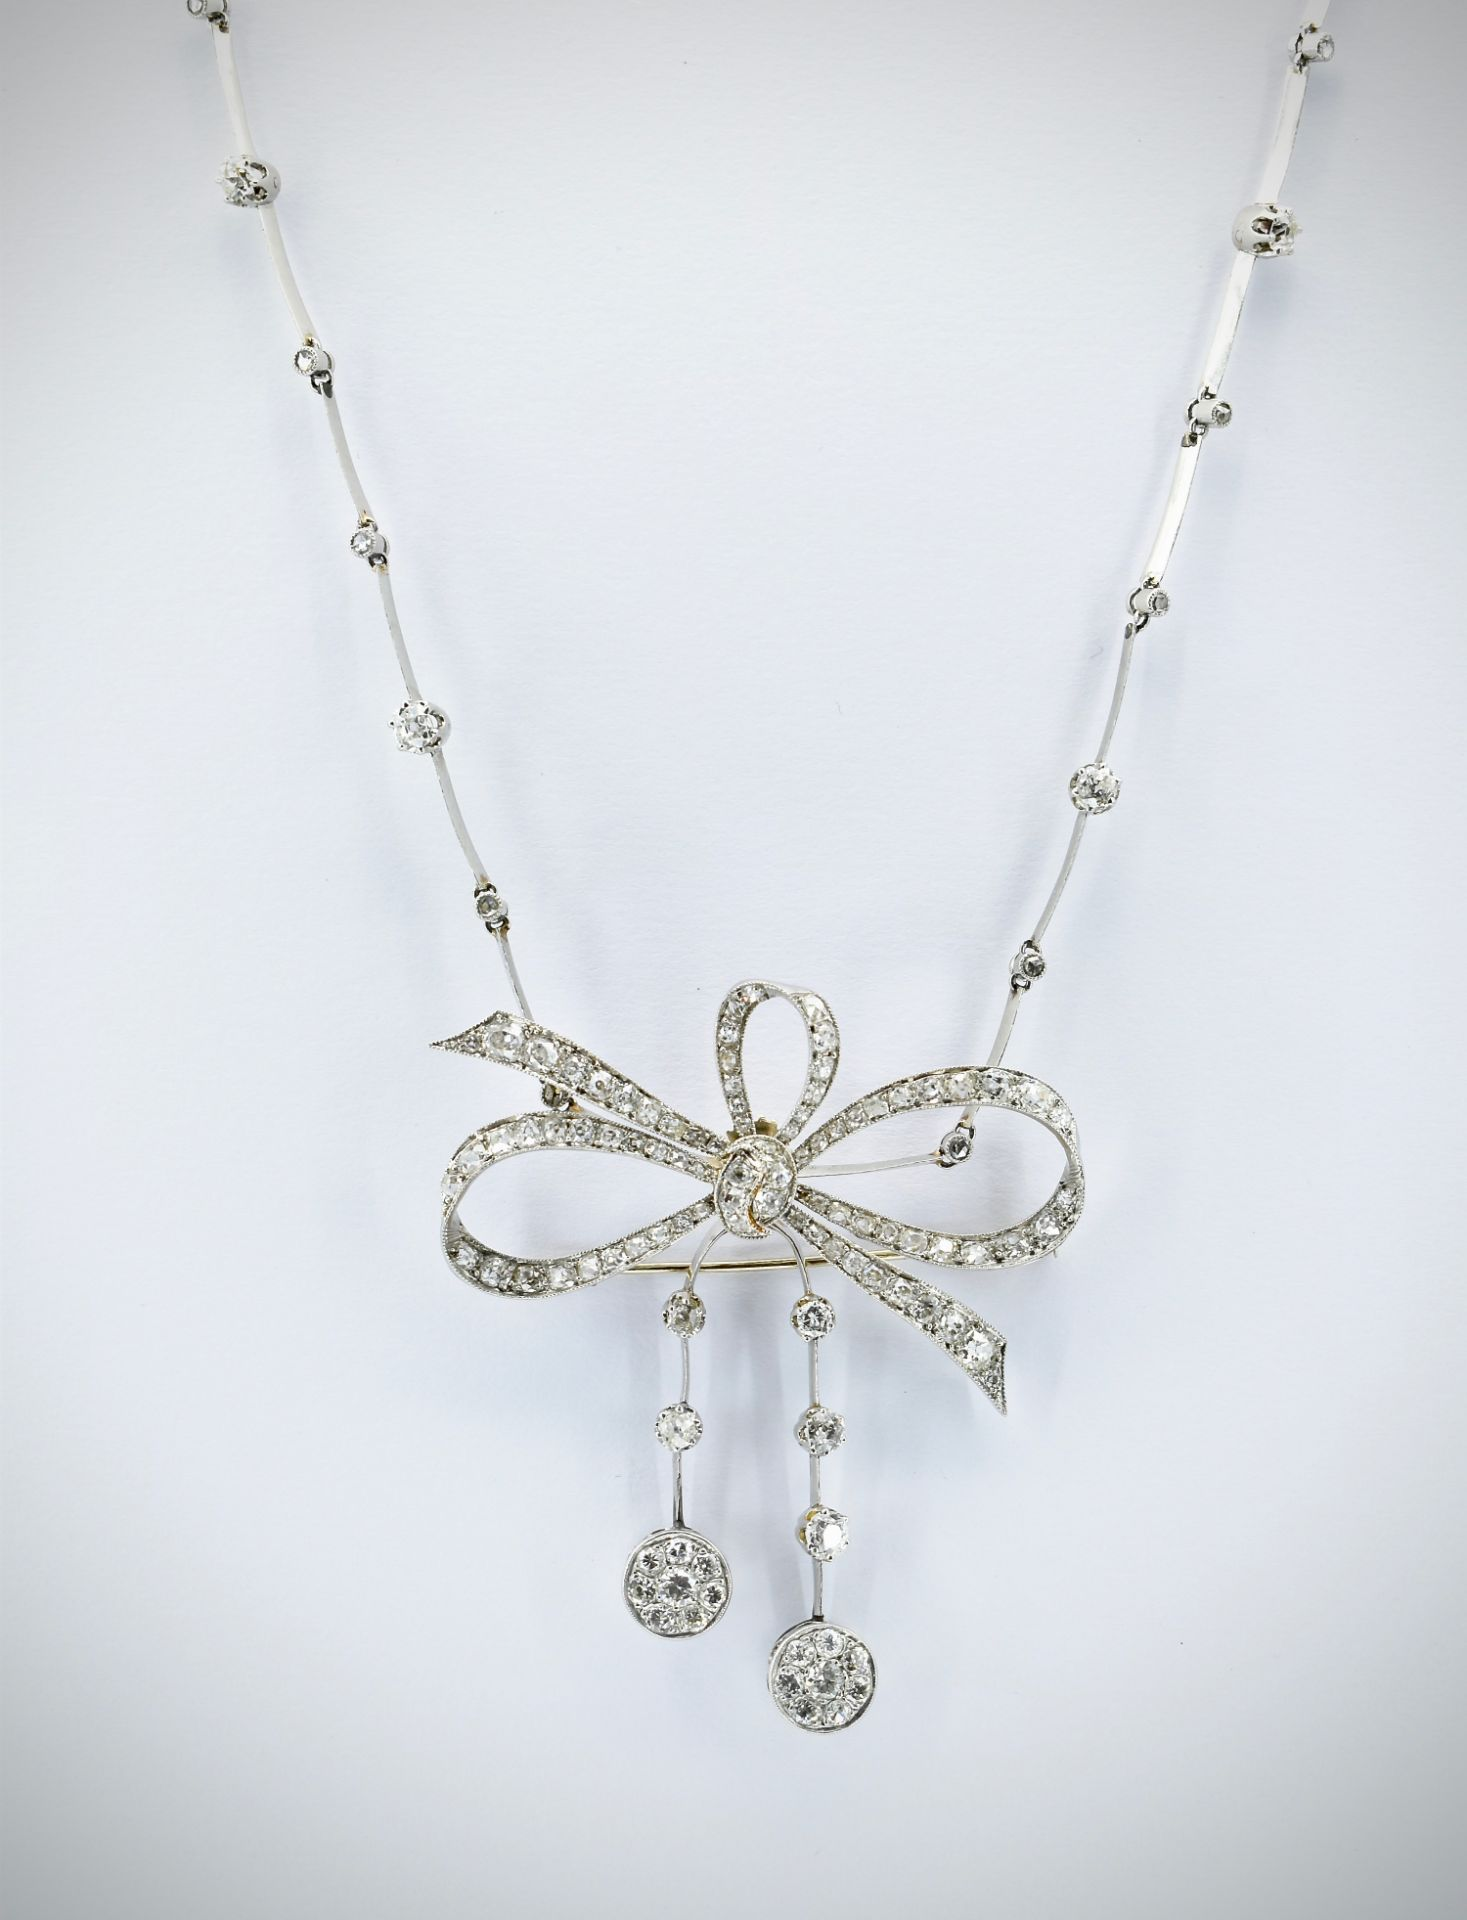 French 18ct Gold Platinum & Diamond Collar Necklace - Image 2 of 9